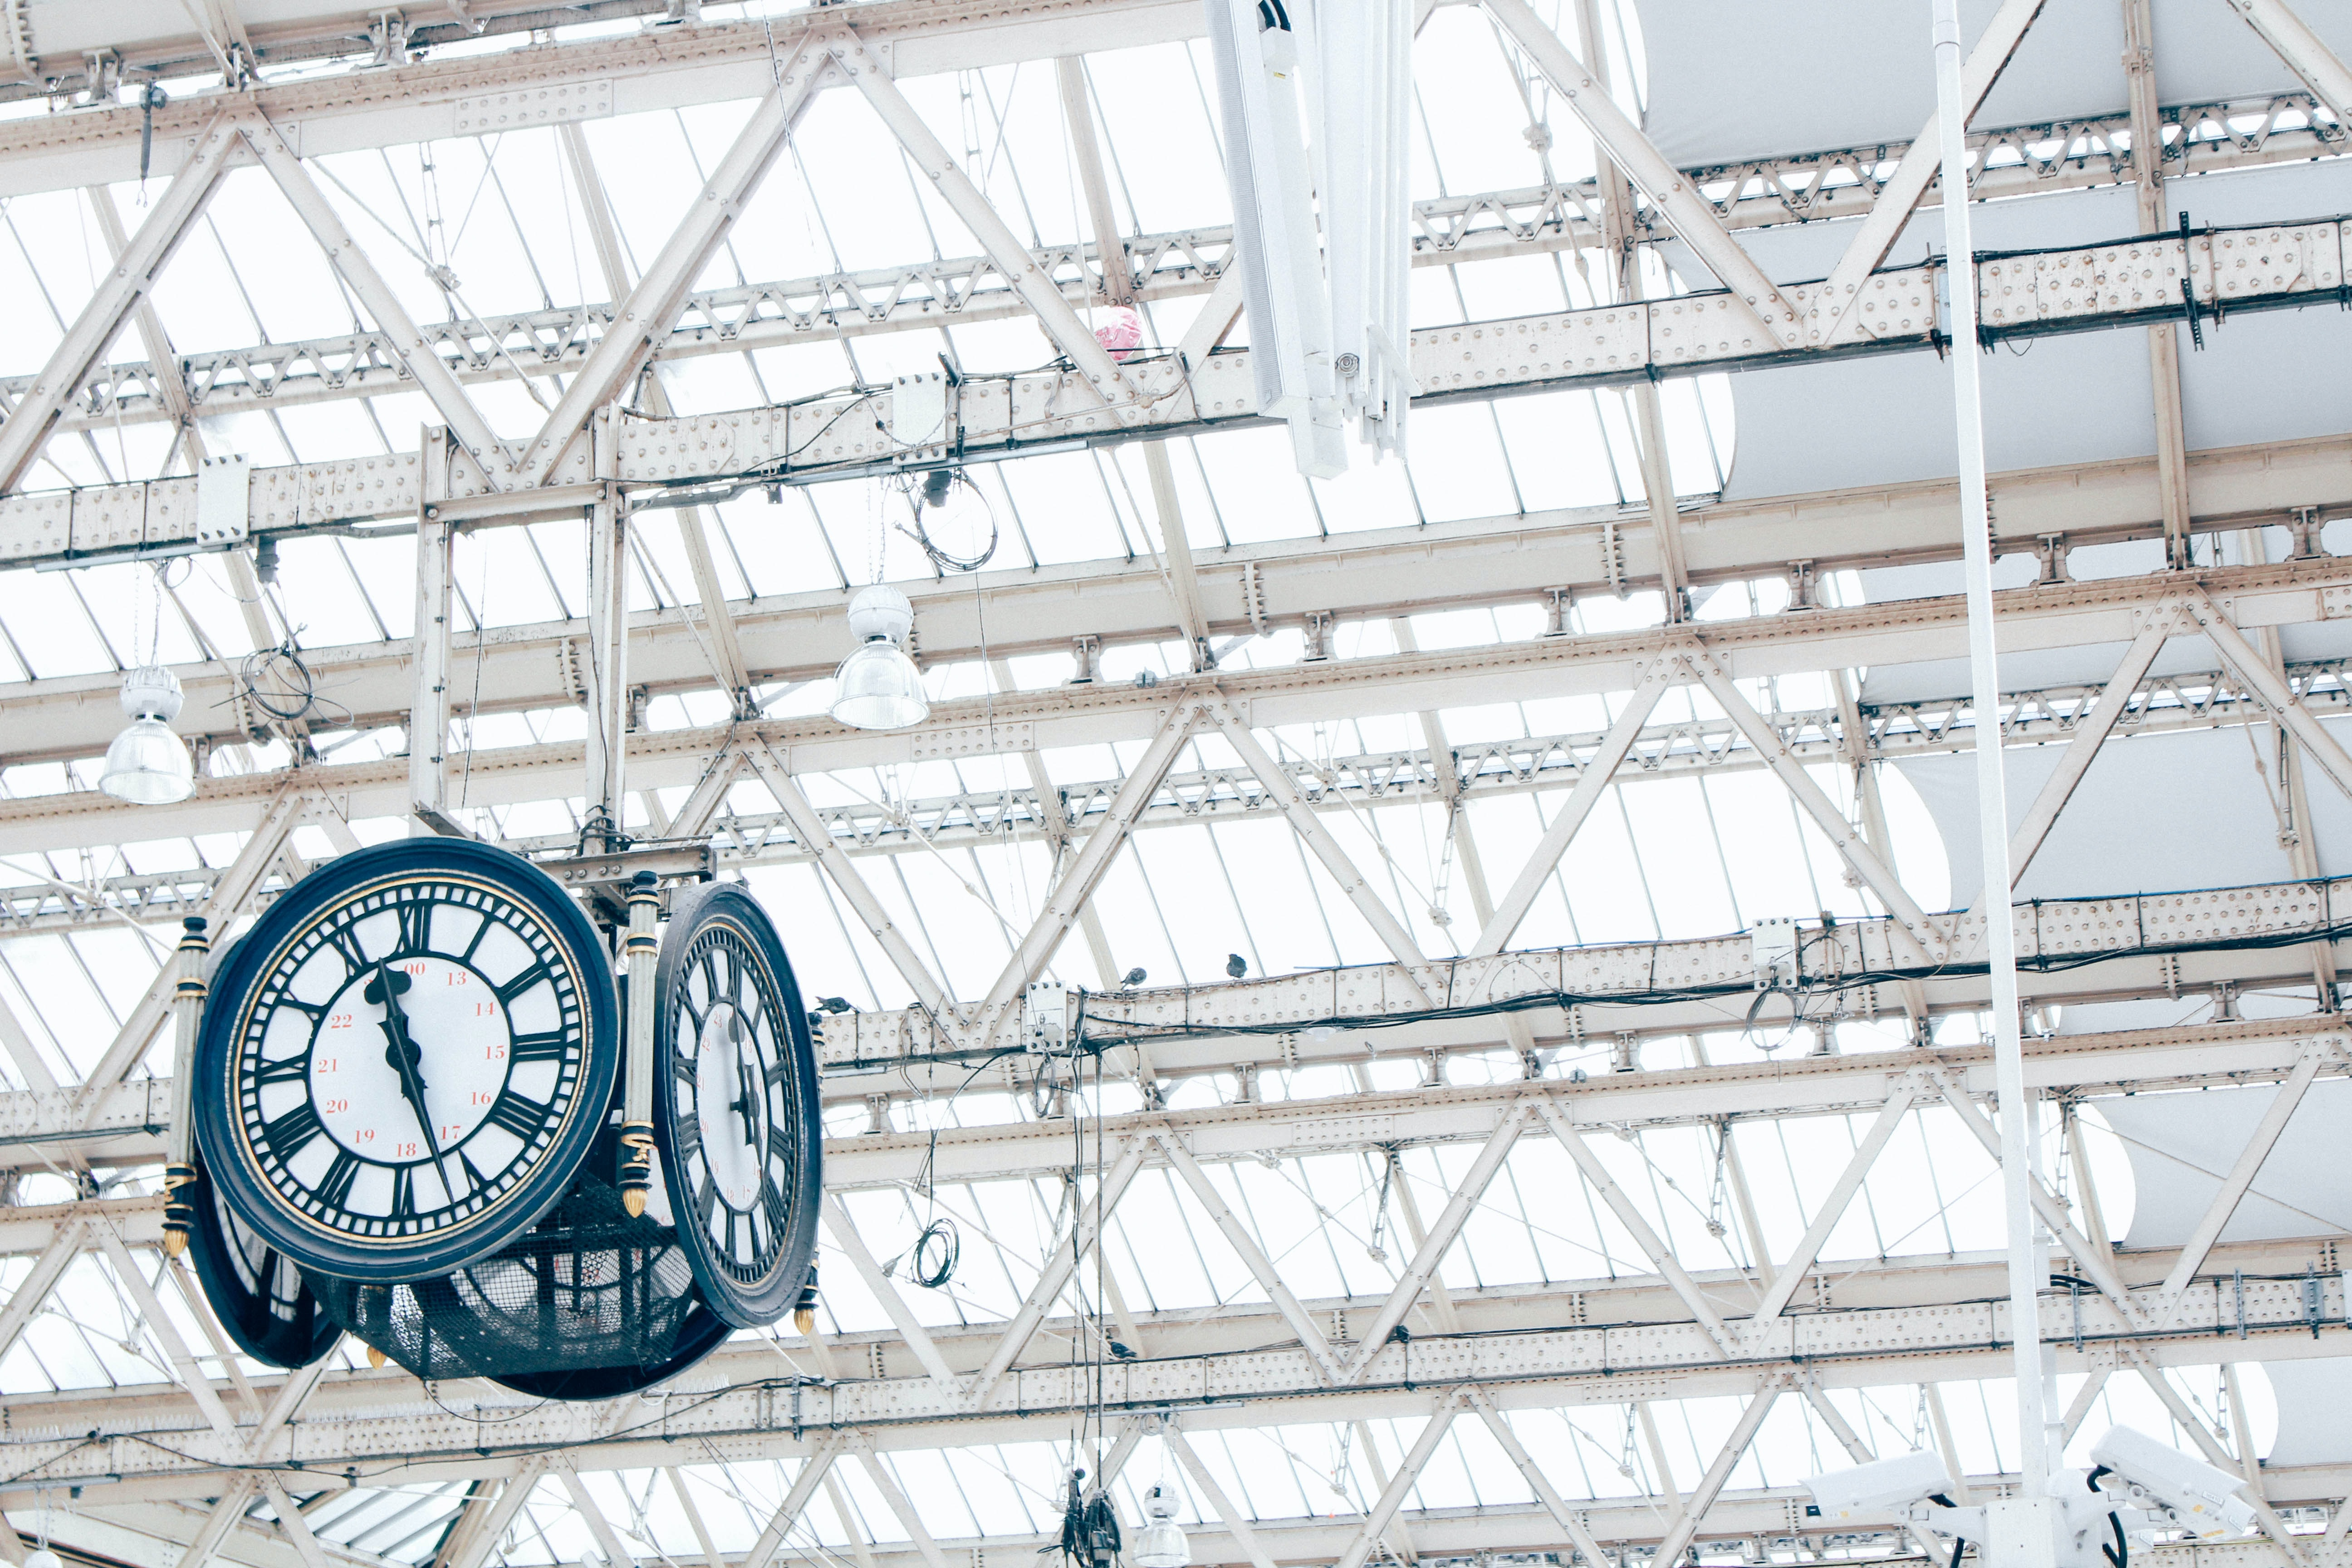 round white and blue analog hanging clock under white trusses